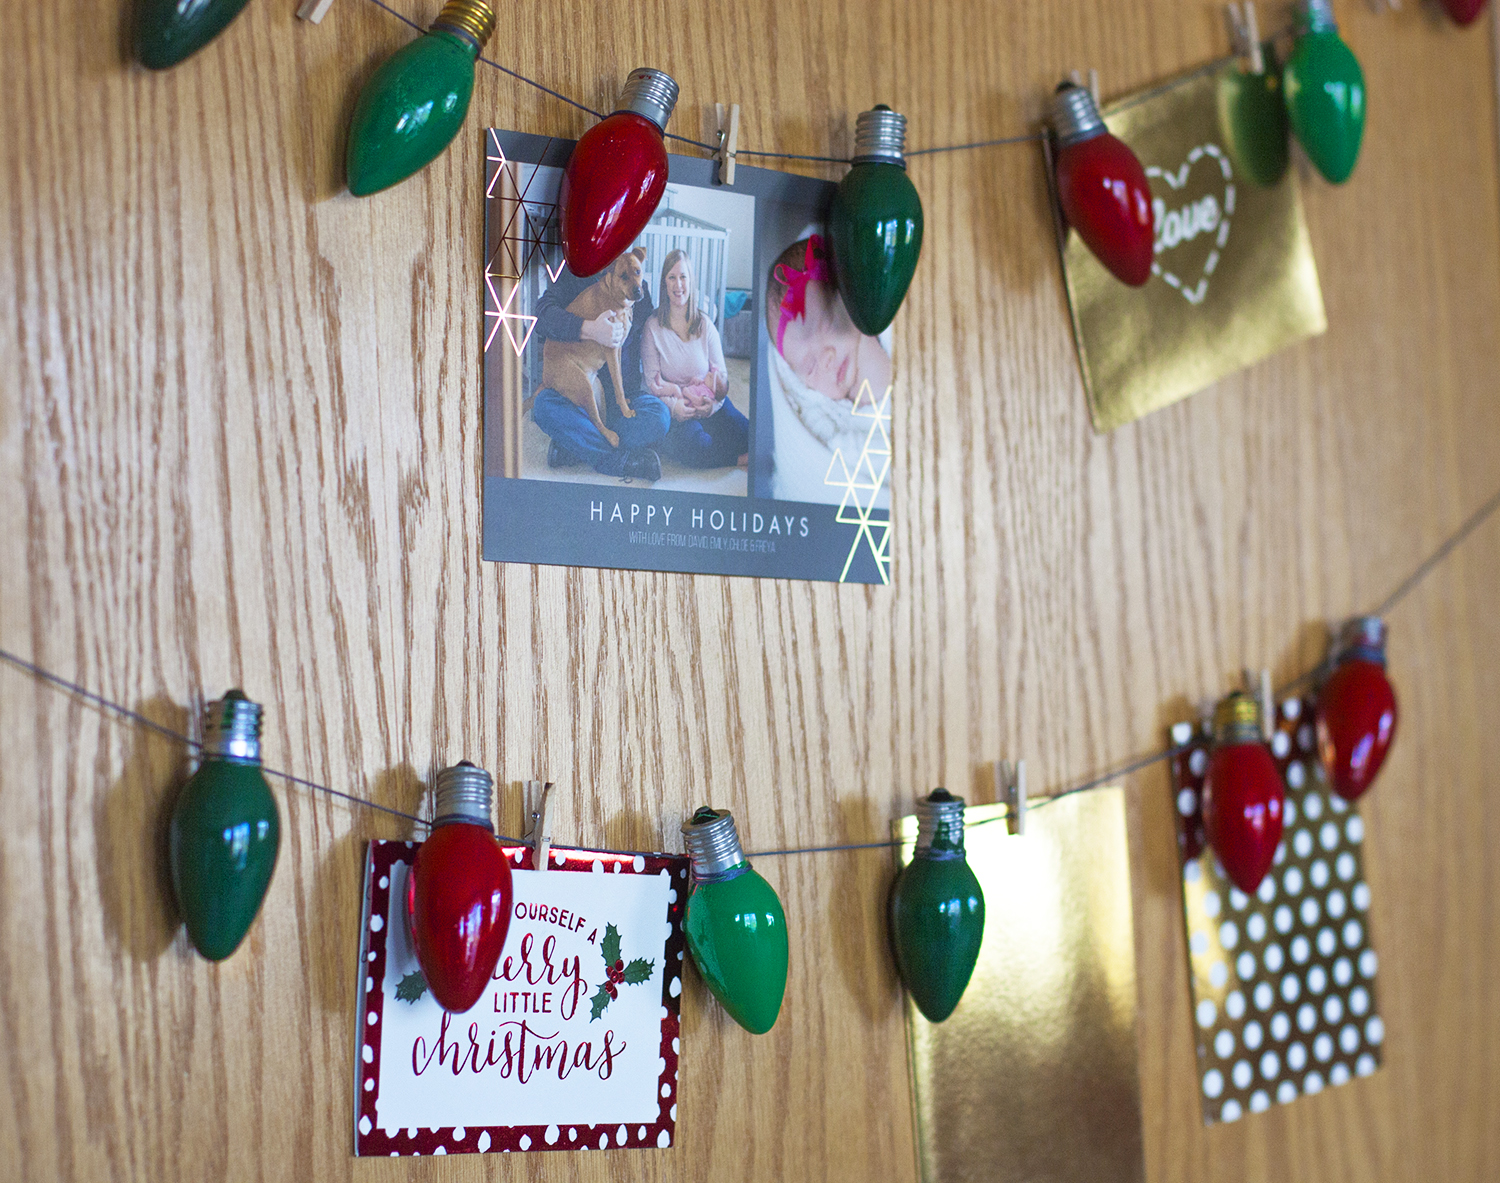 What a simple and adorable Christmas card display idea. How cute are those painted light bulbs?! This is a great way to hang up Christmas cards. #DecoArtProjects #ChristmasCards #ChristmasCardDisplay #Christmas #ChristmasDecor #DIYChristmas